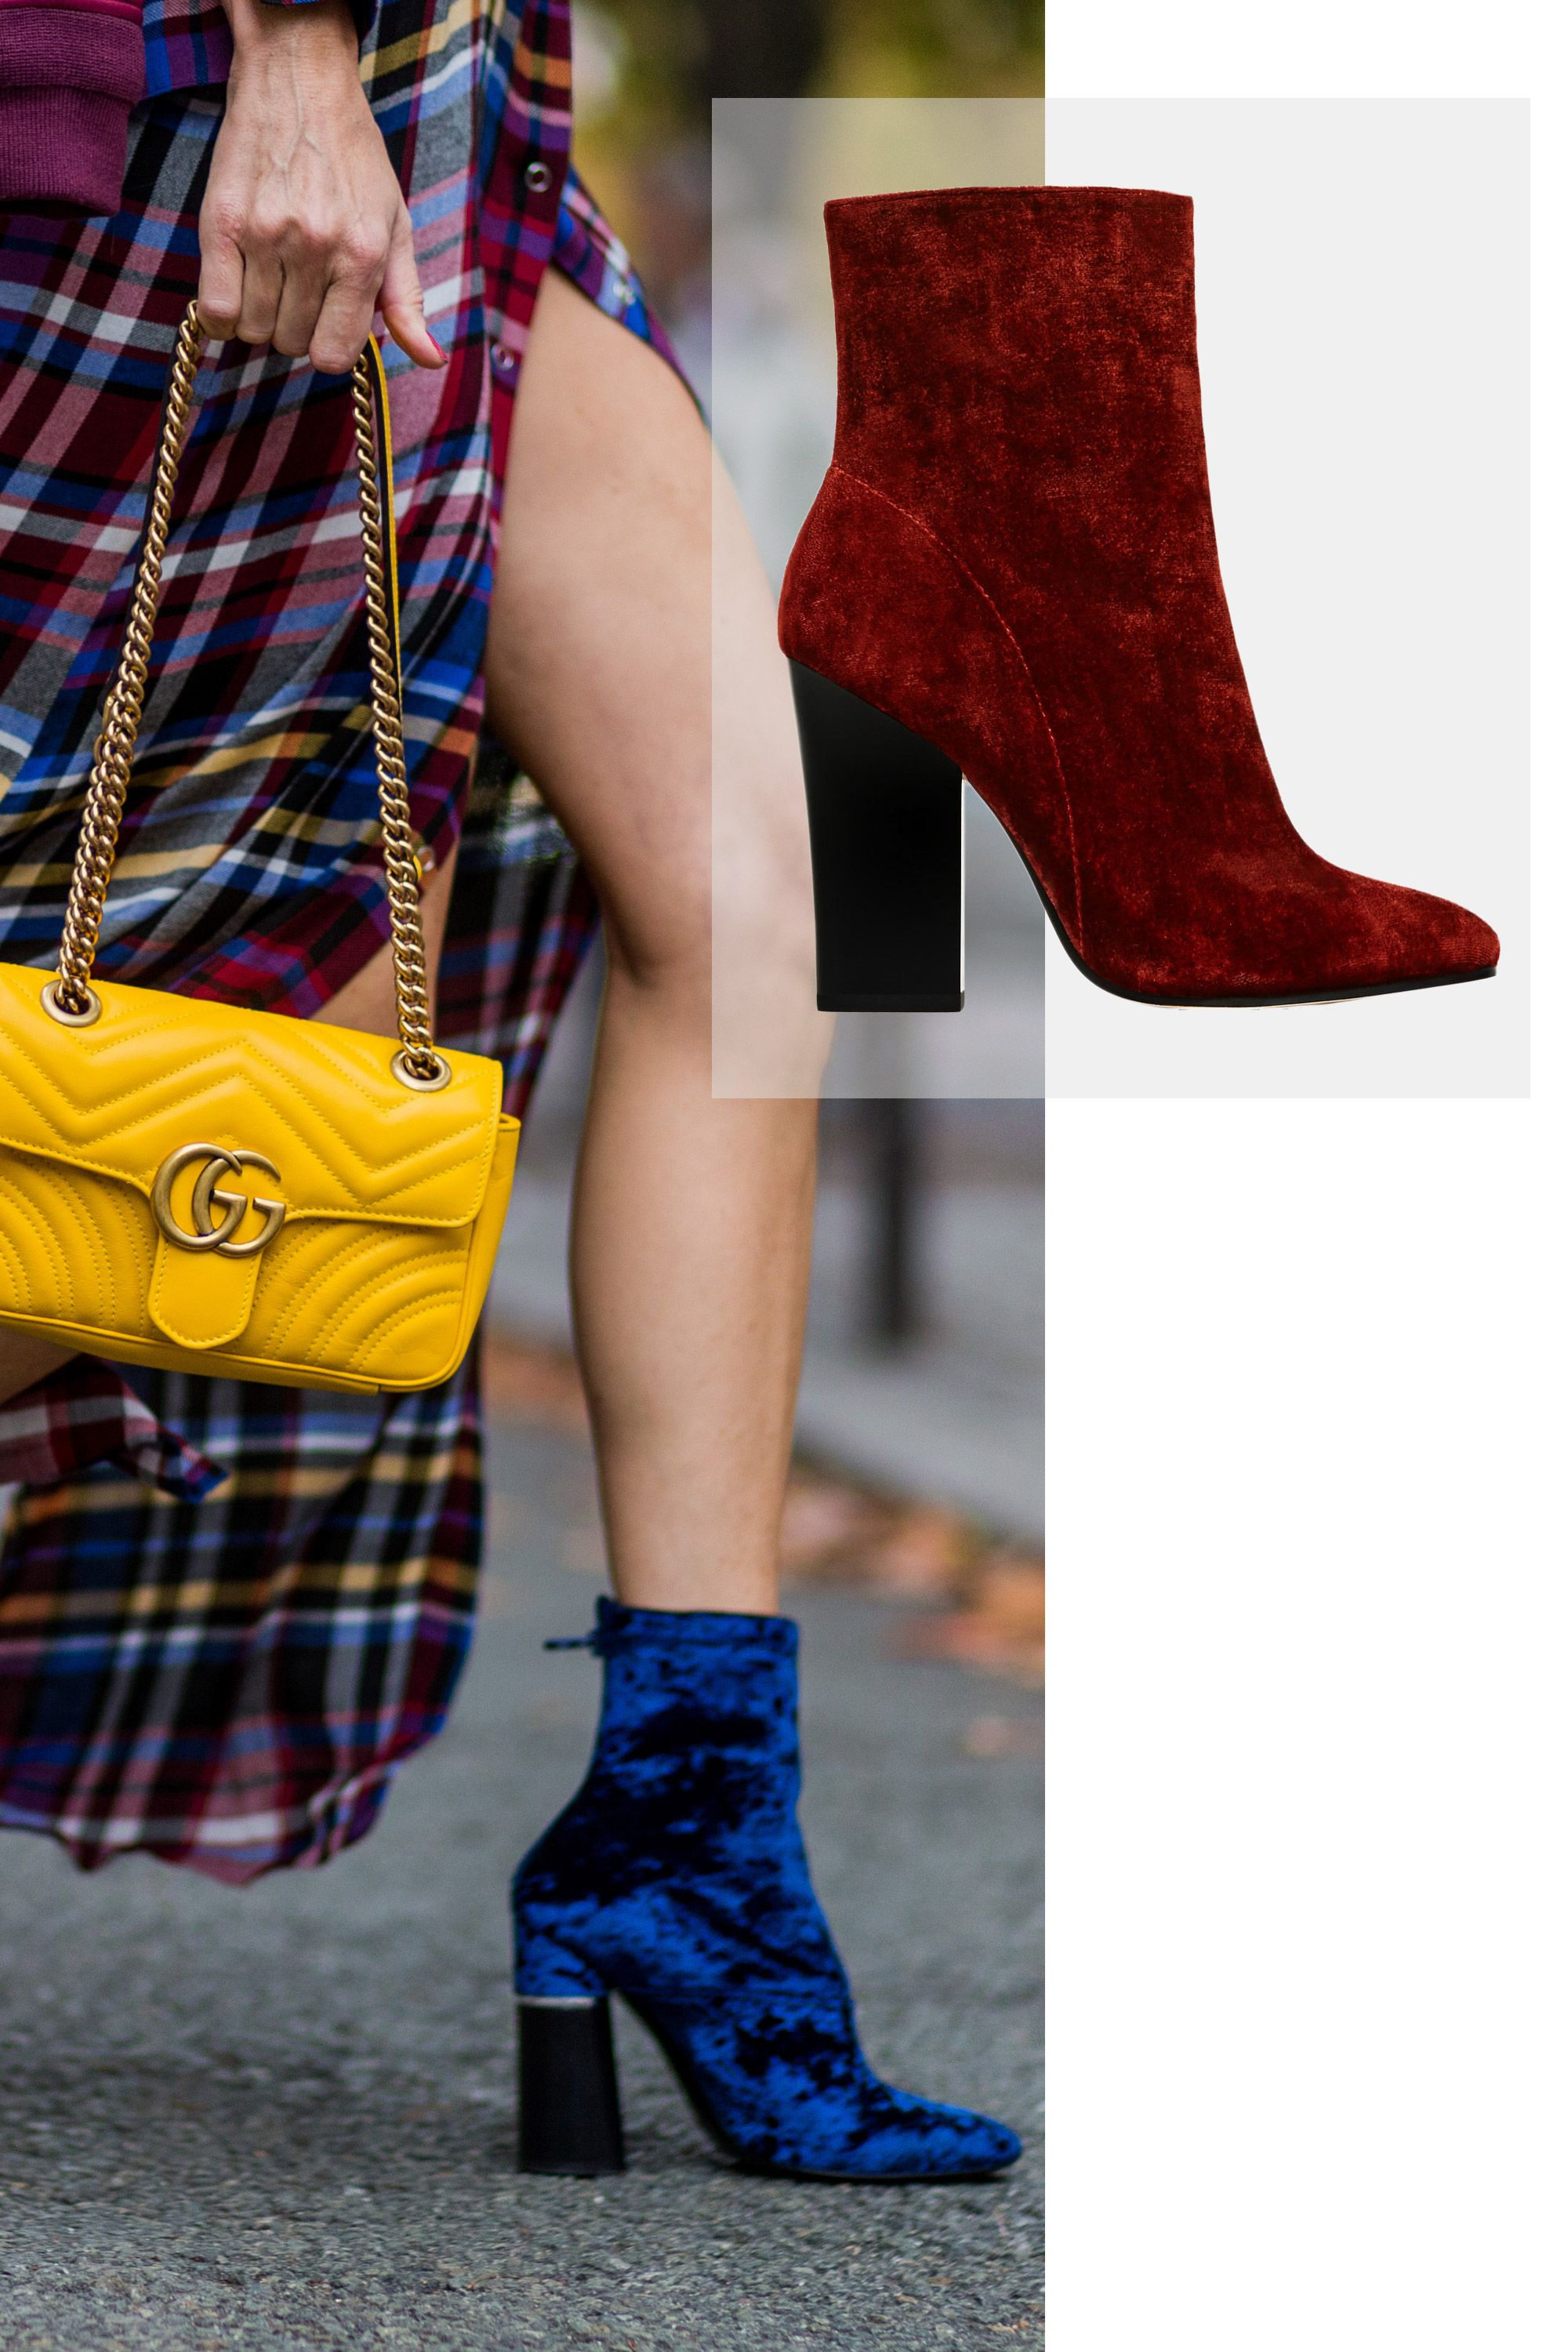 """<p>""""I've been seeing a lot of heavy fabrics for accessories, and velvet seems to be the material of choice,"""" says Rajni Lucienne Jacques, a creative consultant based in Brooklyn. """"A lot of girls are rocking velvet booties in jewel colors. They are what I like to call sock booties with a slight point—it's pretty much the Yeezy effect.""""</p>  <p><em data-redactor-tag=""""em"""" data-verified=""""redactor"""">Zara Velvet High Heel Ankle Boots, $119; </em><a href=""""http://www.zara.com/us/en/woman/shoes/ankle-boots/velvet-high-heel-ankle-boots-c288001p3821526.html"""" target=""""_blank"""" data-tracking-id=""""recirc-text-link""""><em data-redactor-tag=""""em"""" data-verified=""""redactor"""">zara.com</em></a></p>"""